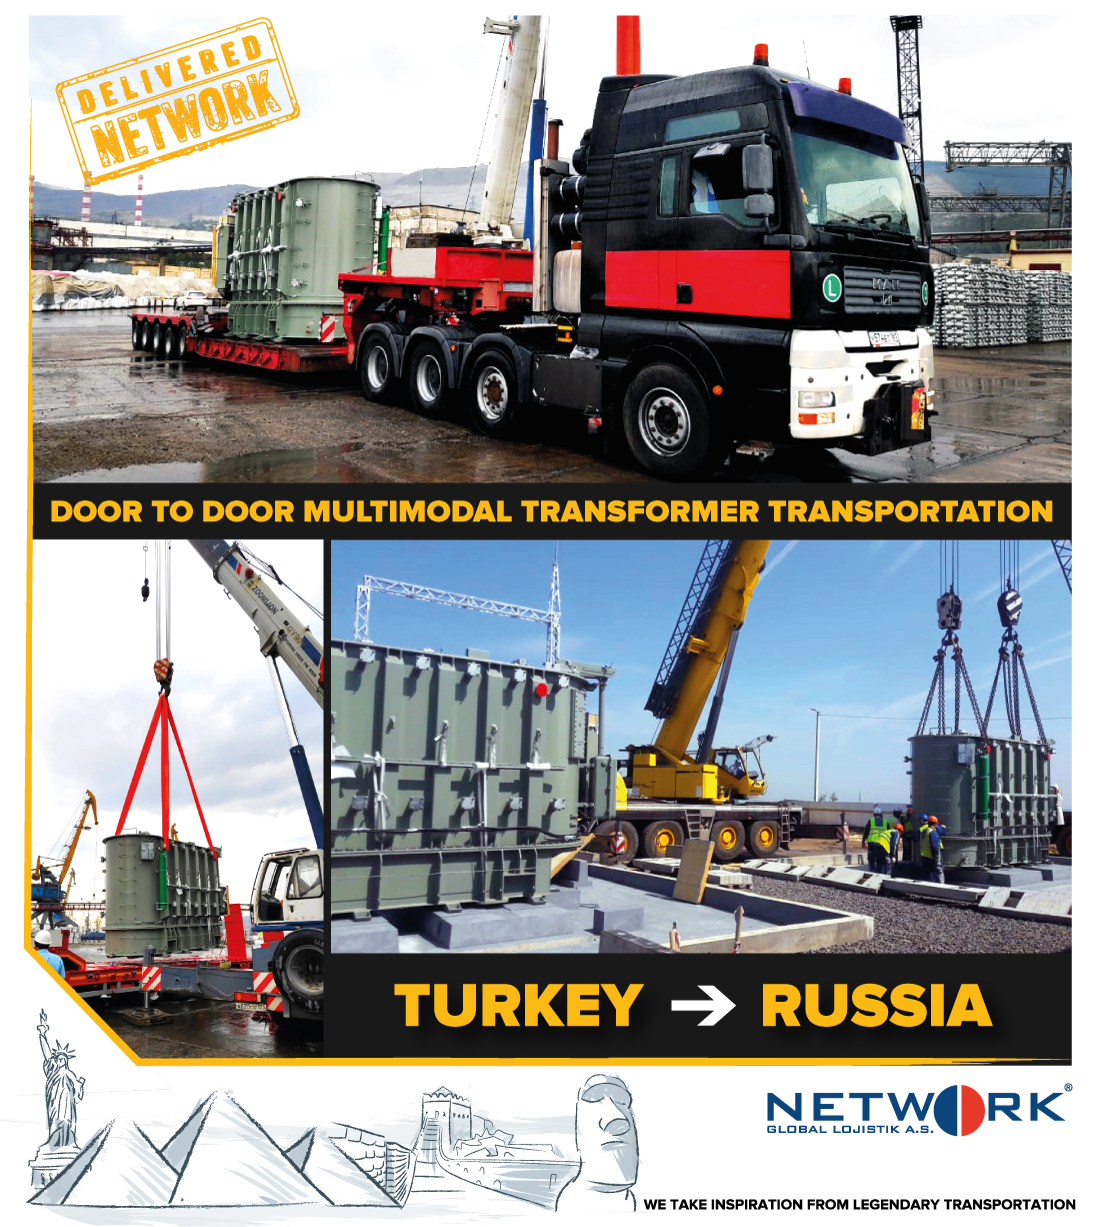 turkey-russia-networkglobllogistics